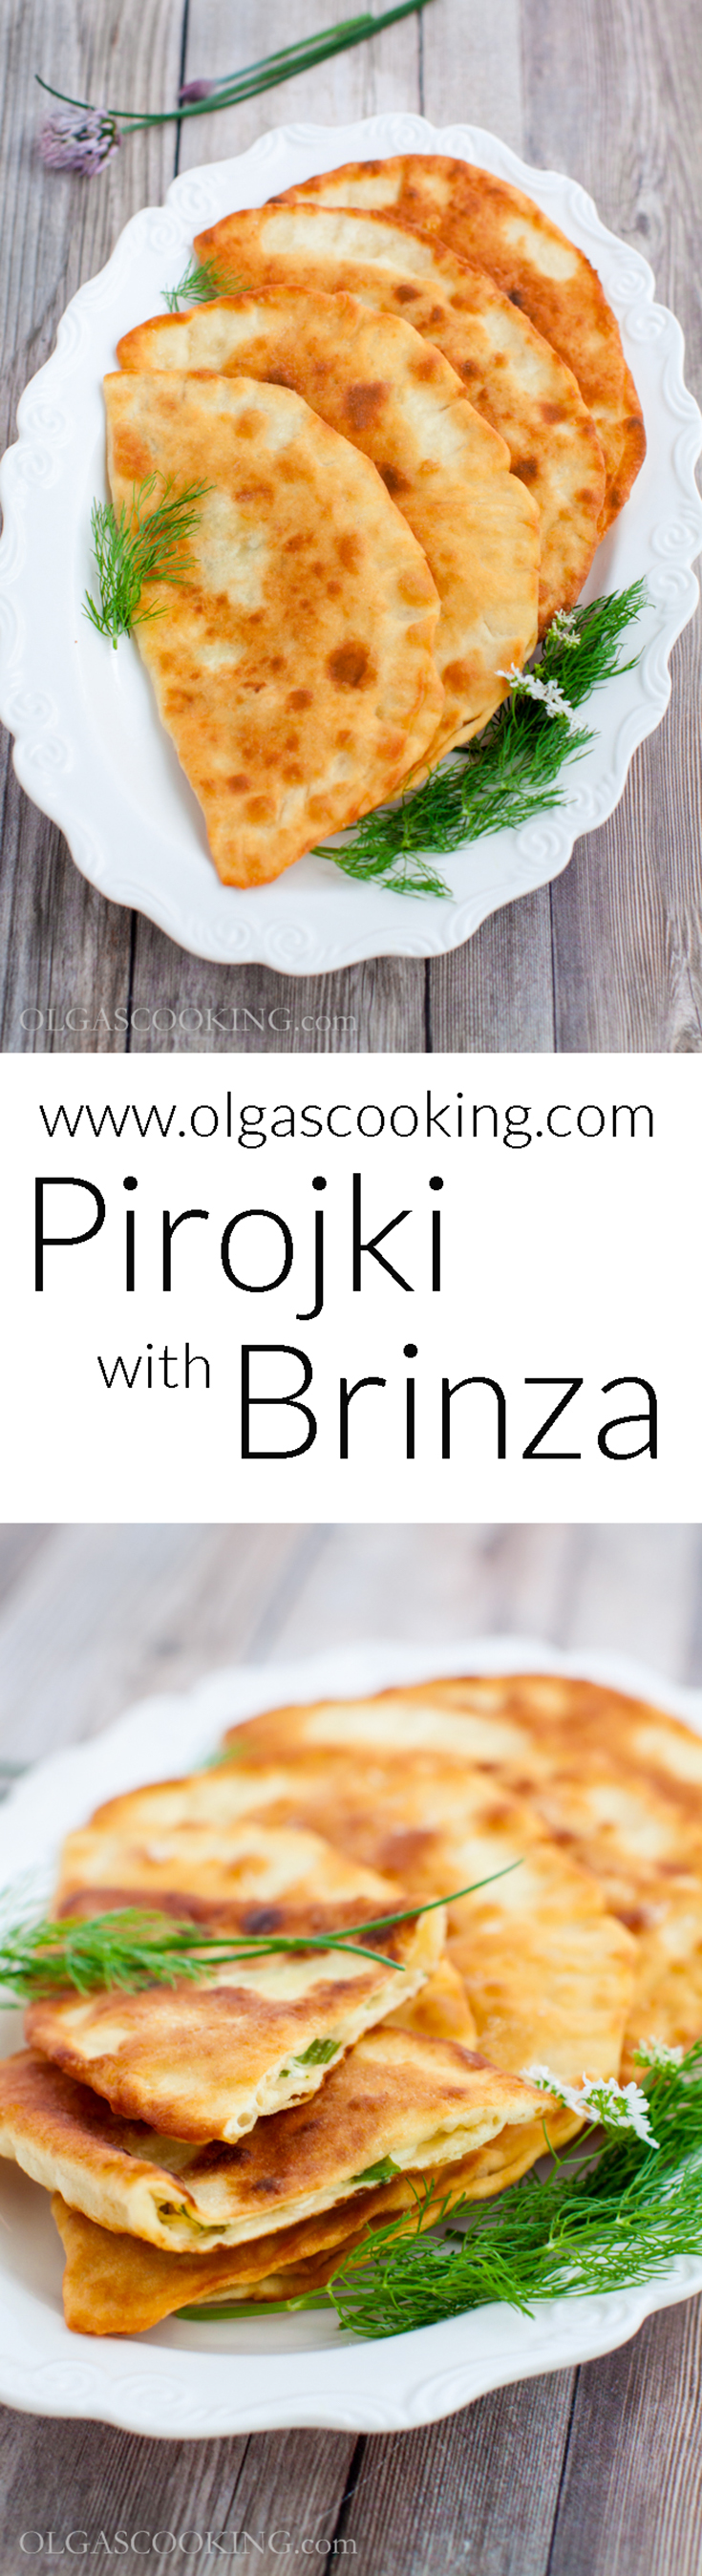 Pirojki with Brinza